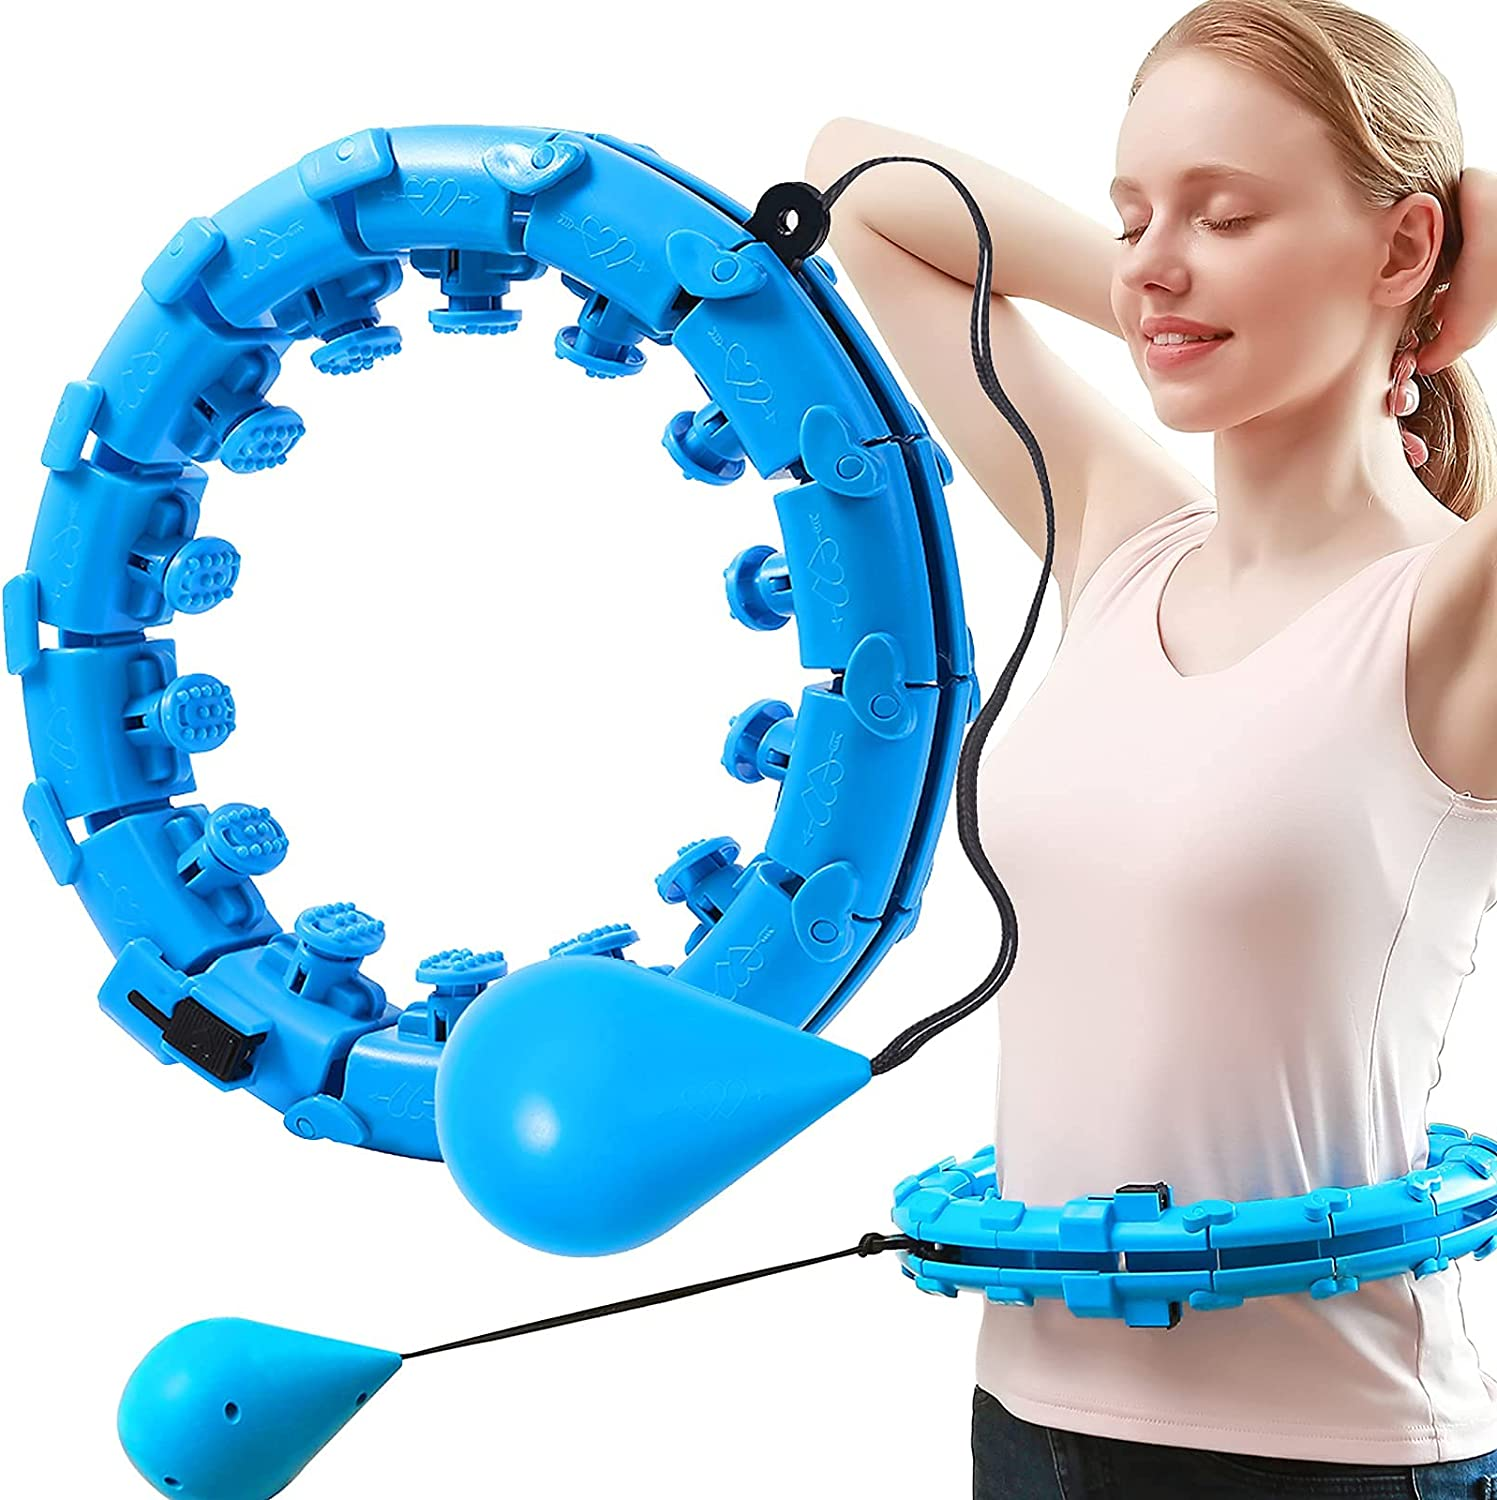 OHINGLT Weighted Hula Hoop for Adults Ho Bargain sale Our shop most popular Hoola Loss Smart Weight